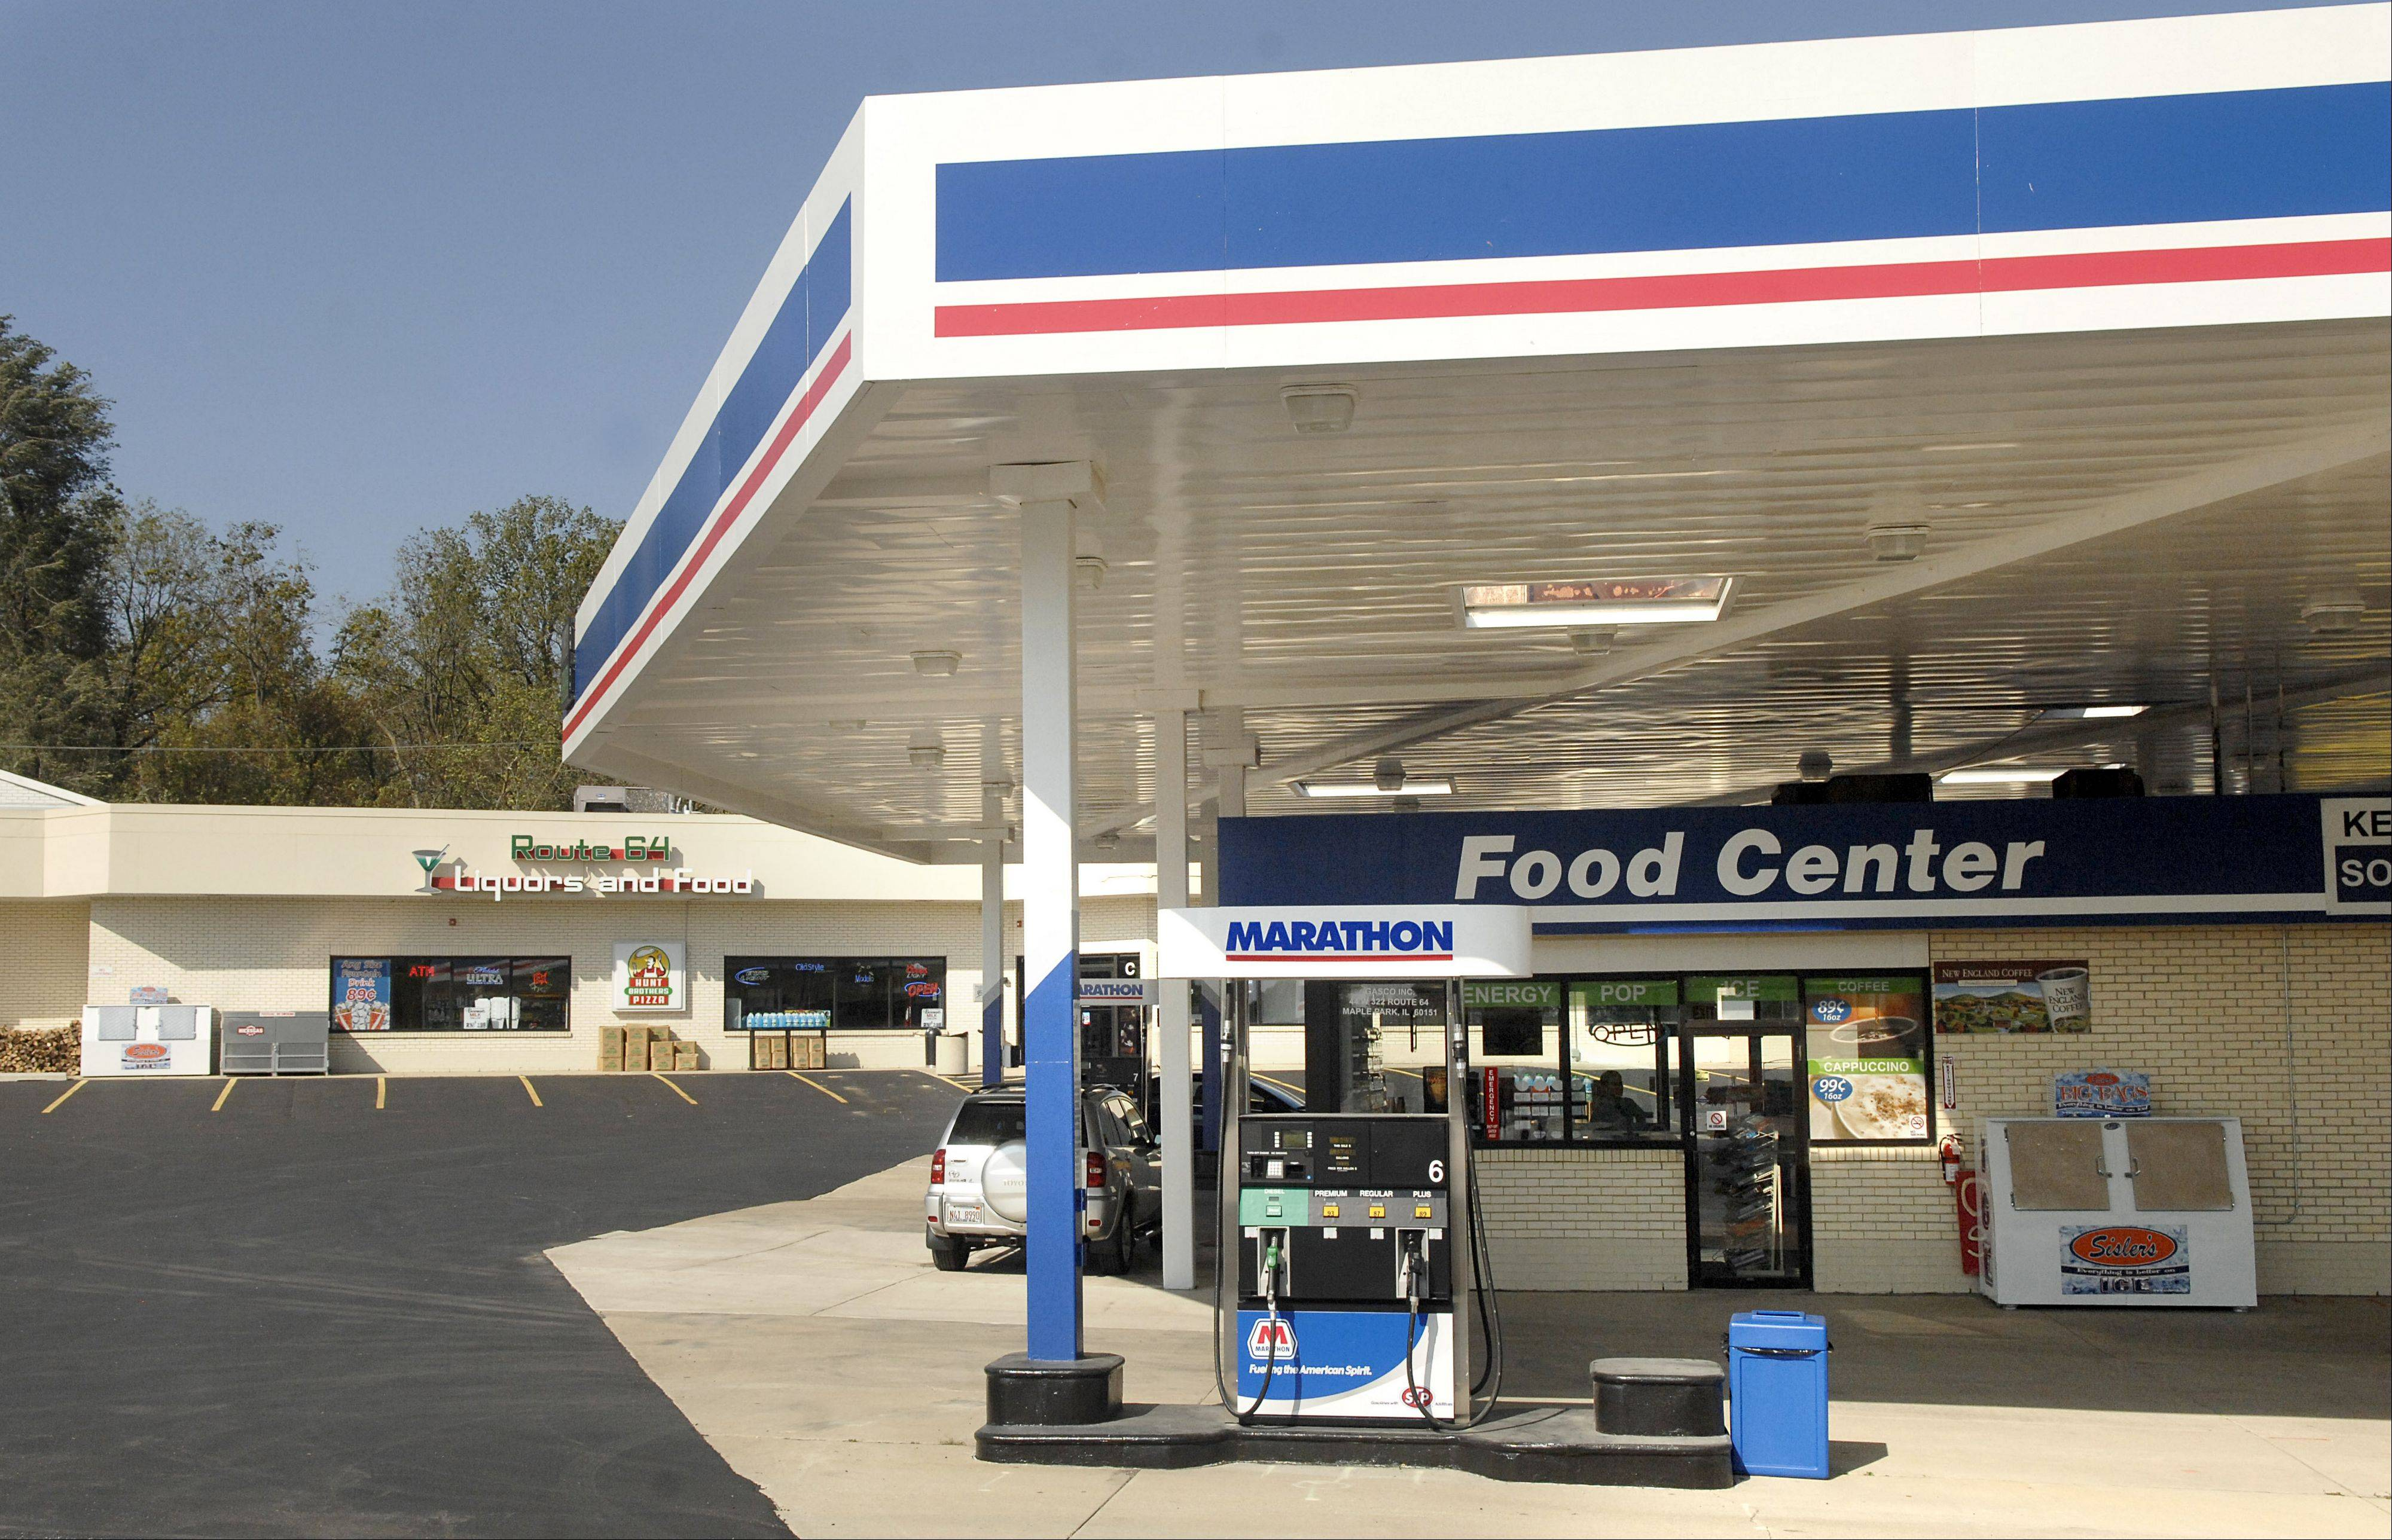 The Marathon gas station and the Route 64 Liquors & Food at the intersection of Routes 47 and 64 reopened for business this week in Lily Lake.